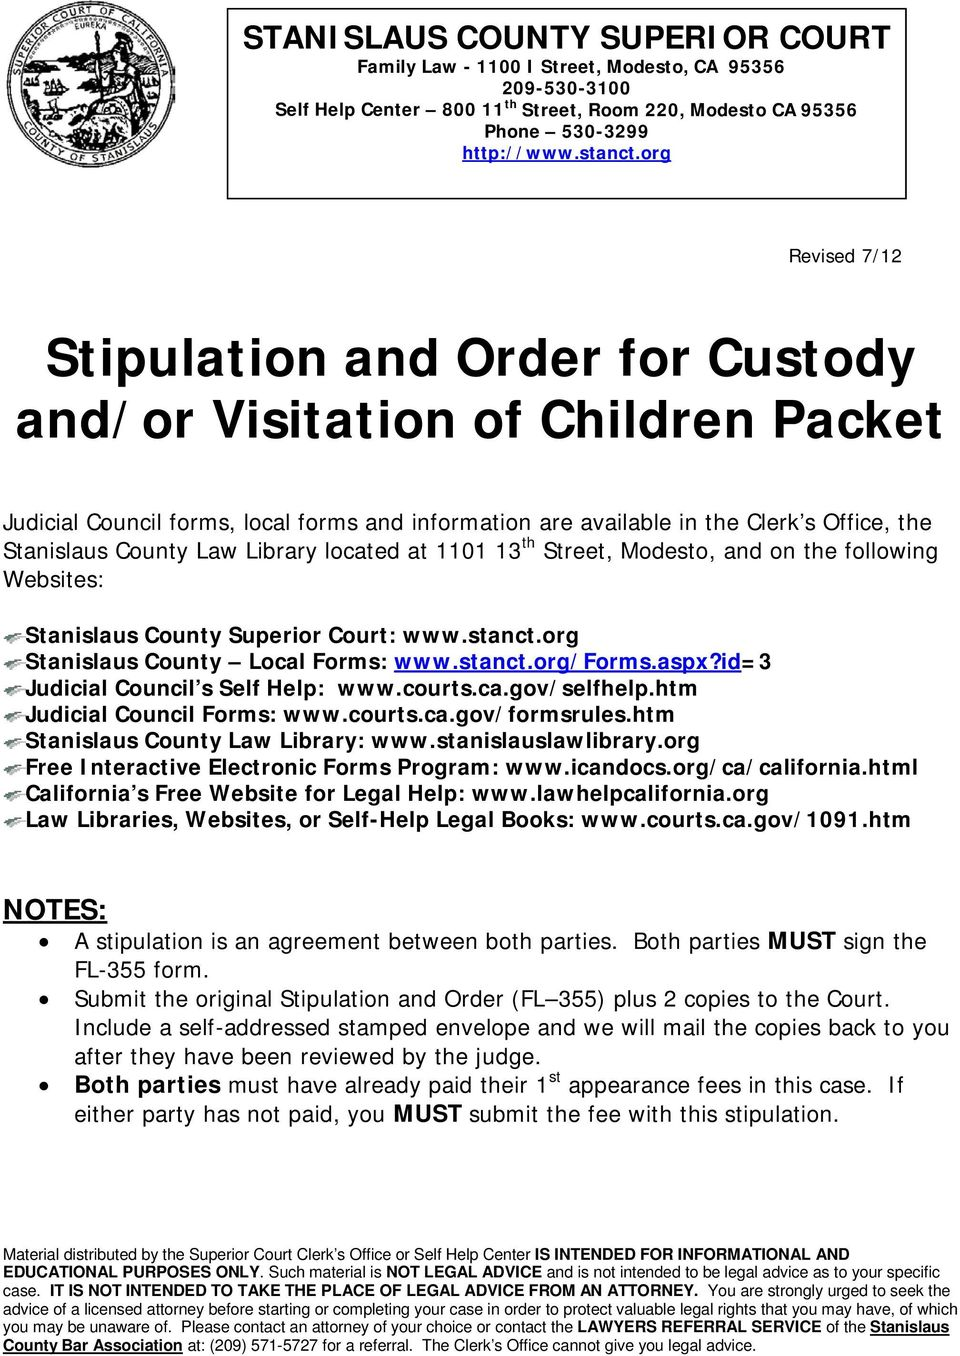 Stipulation and Order for Custody and/or Visitation of